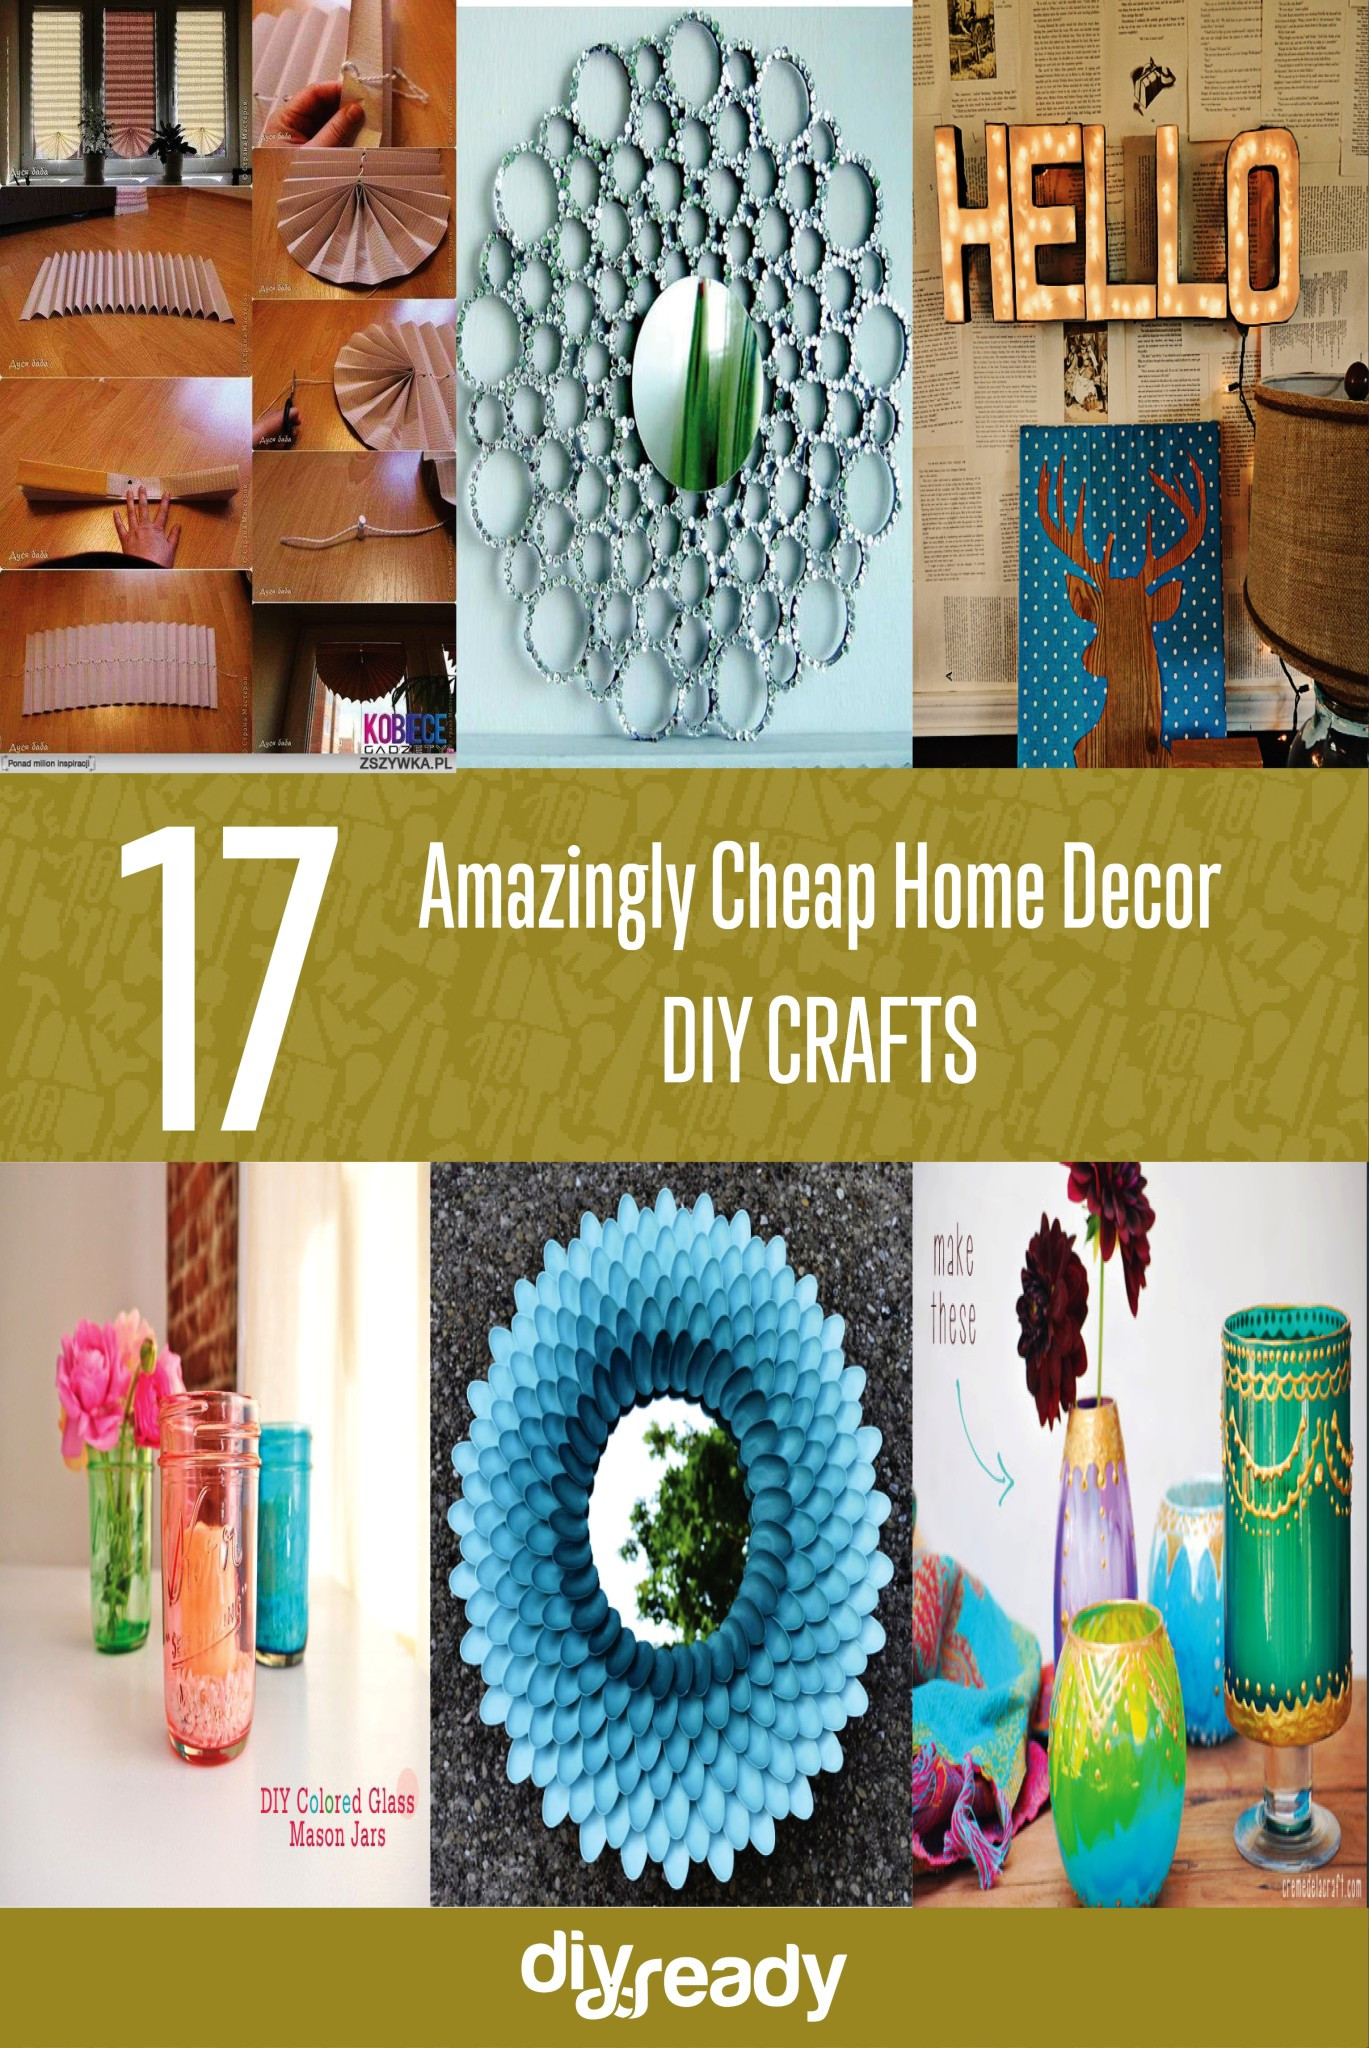 Best ideas about DIY Home Decor Crafts . Save or Pin Amazingly Cheap Home Decor Now.